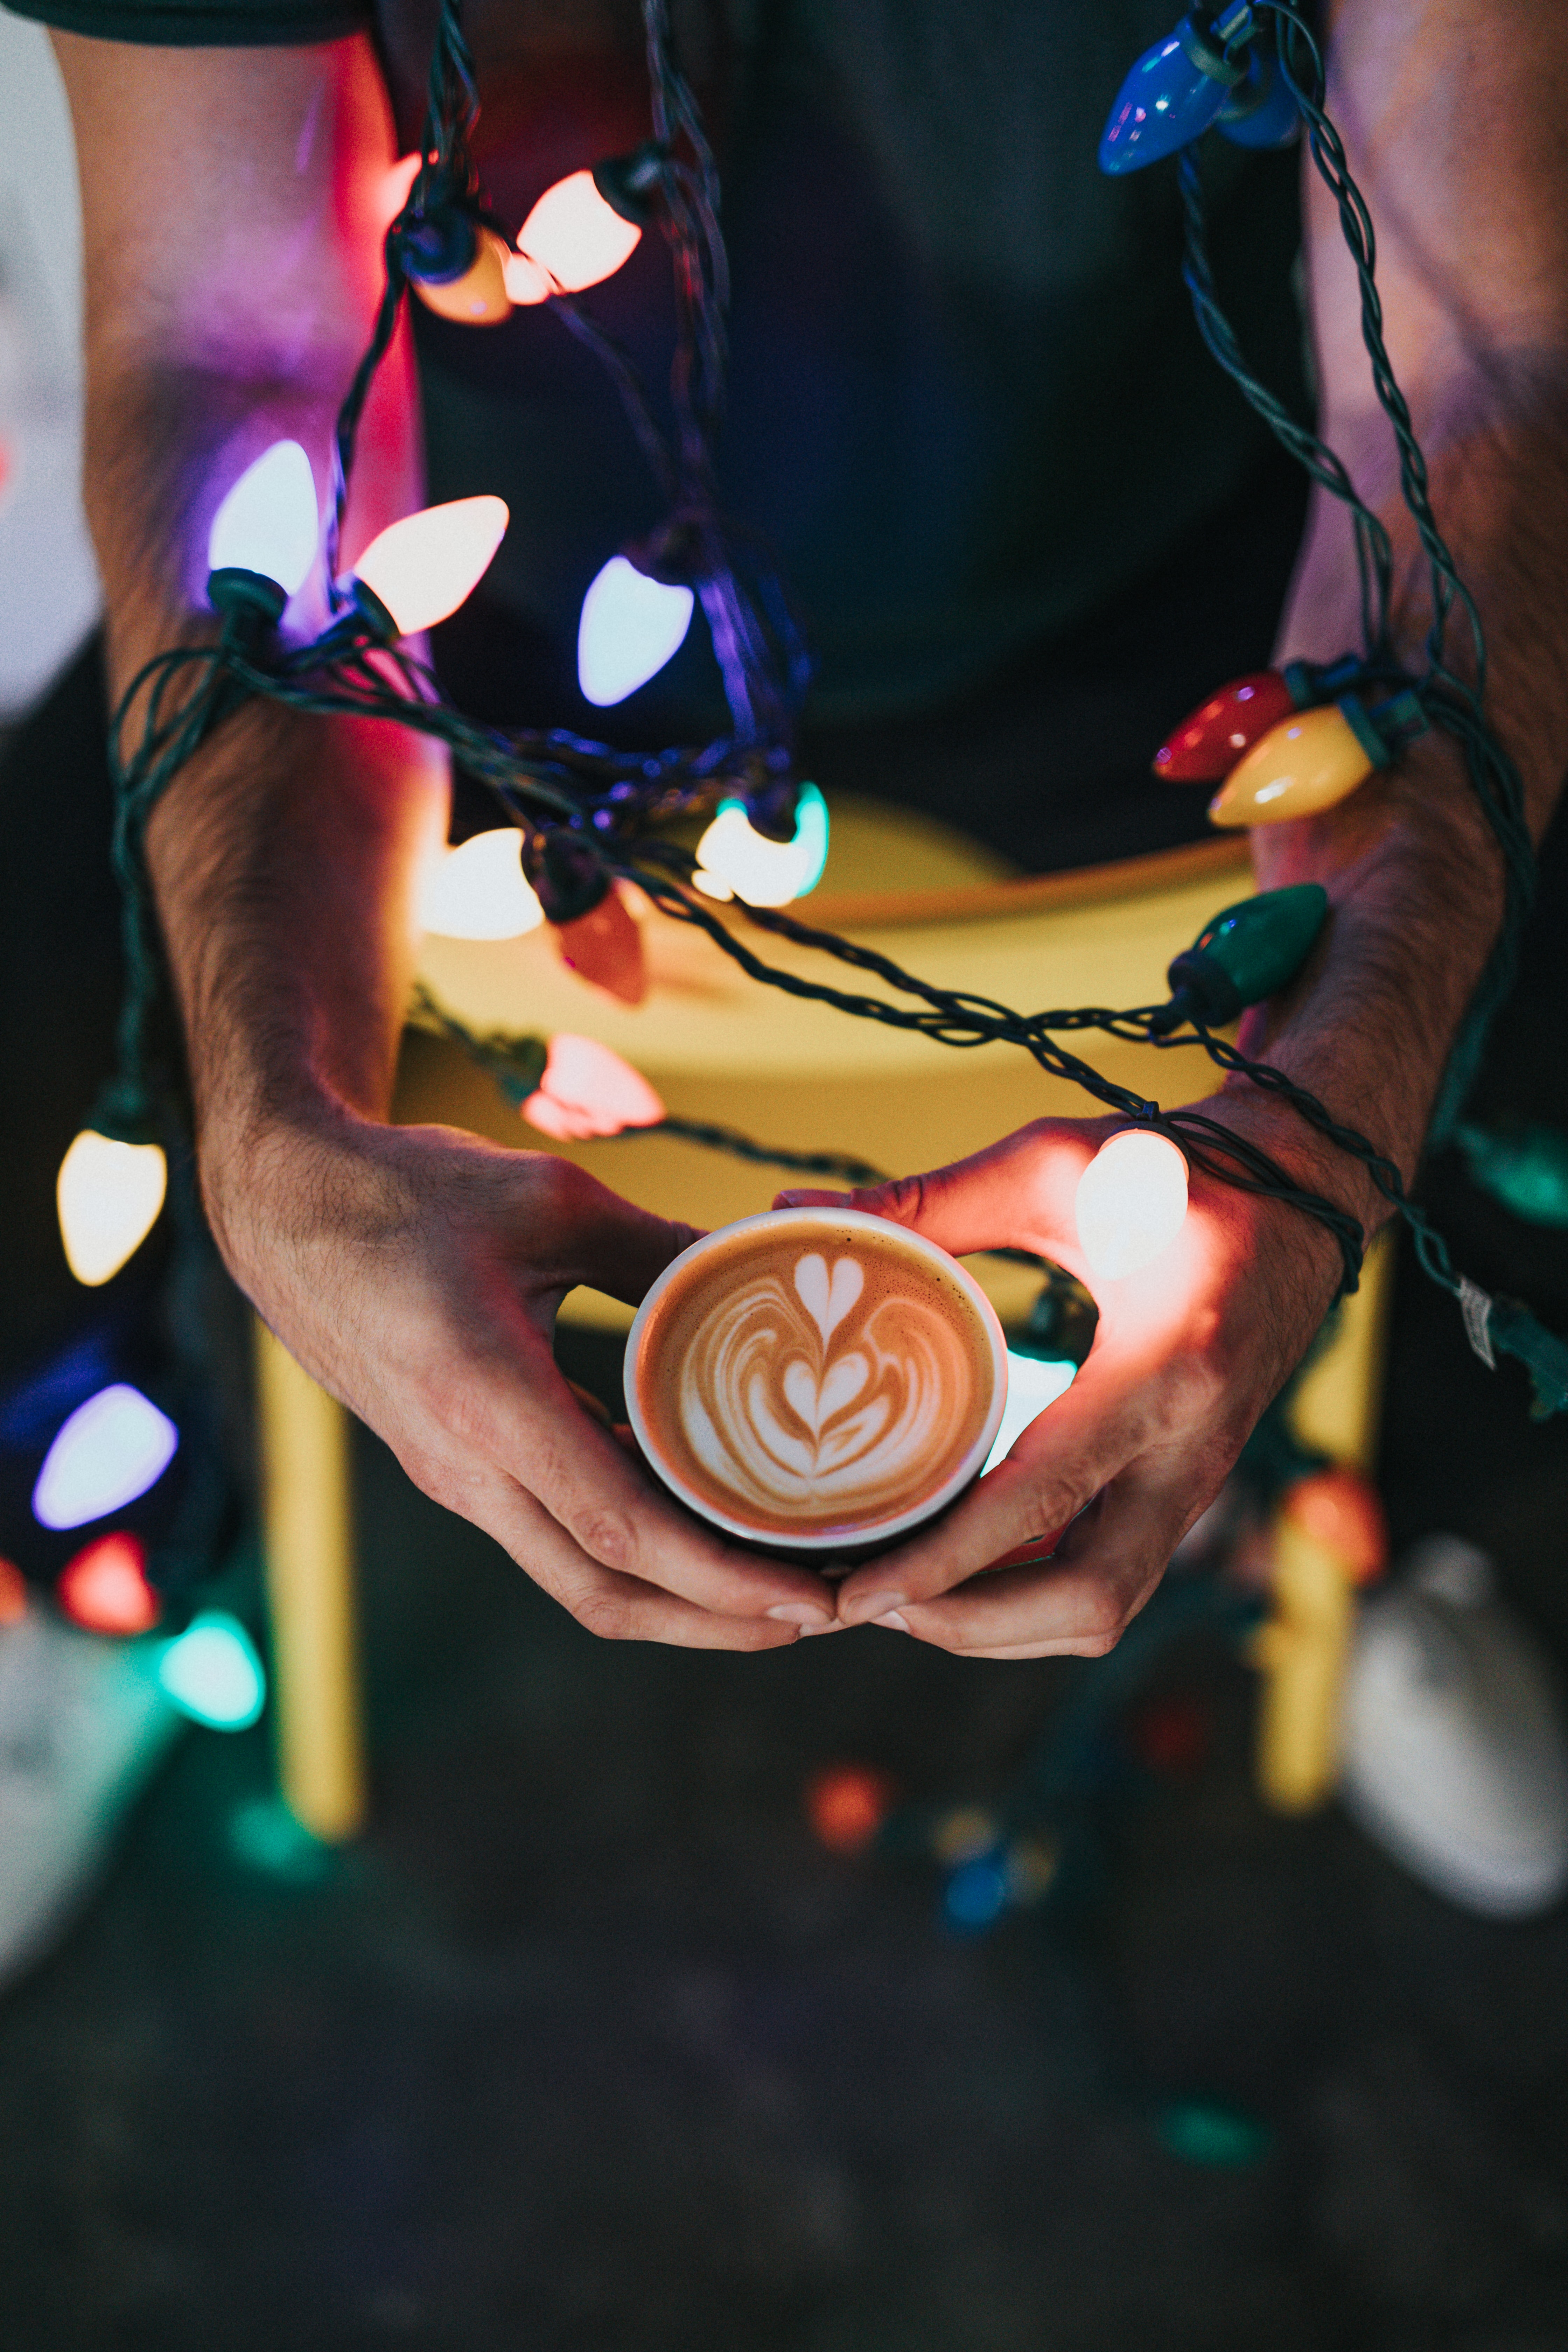 person holding mug with liquor and string light